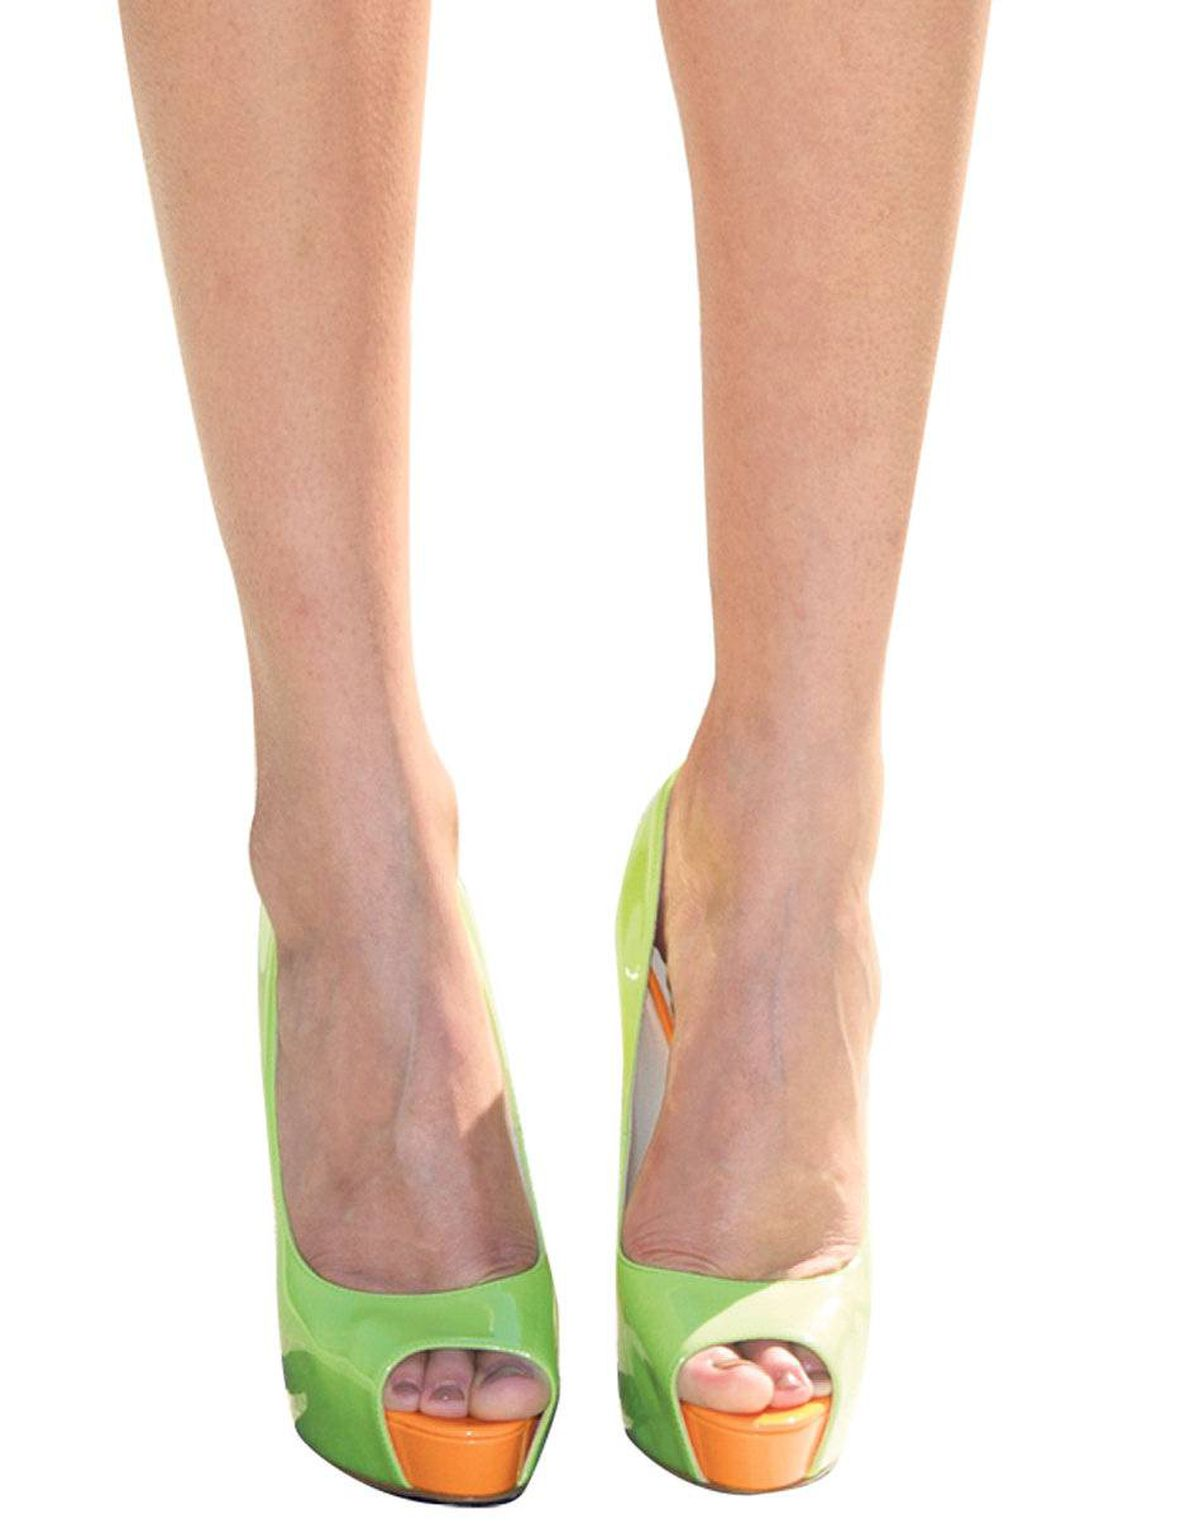 Take a stroll down Electric Avenue in these neon-green and orange peep-toe platforms. Brian Atwood pumps, $735 at the Room at the Bay